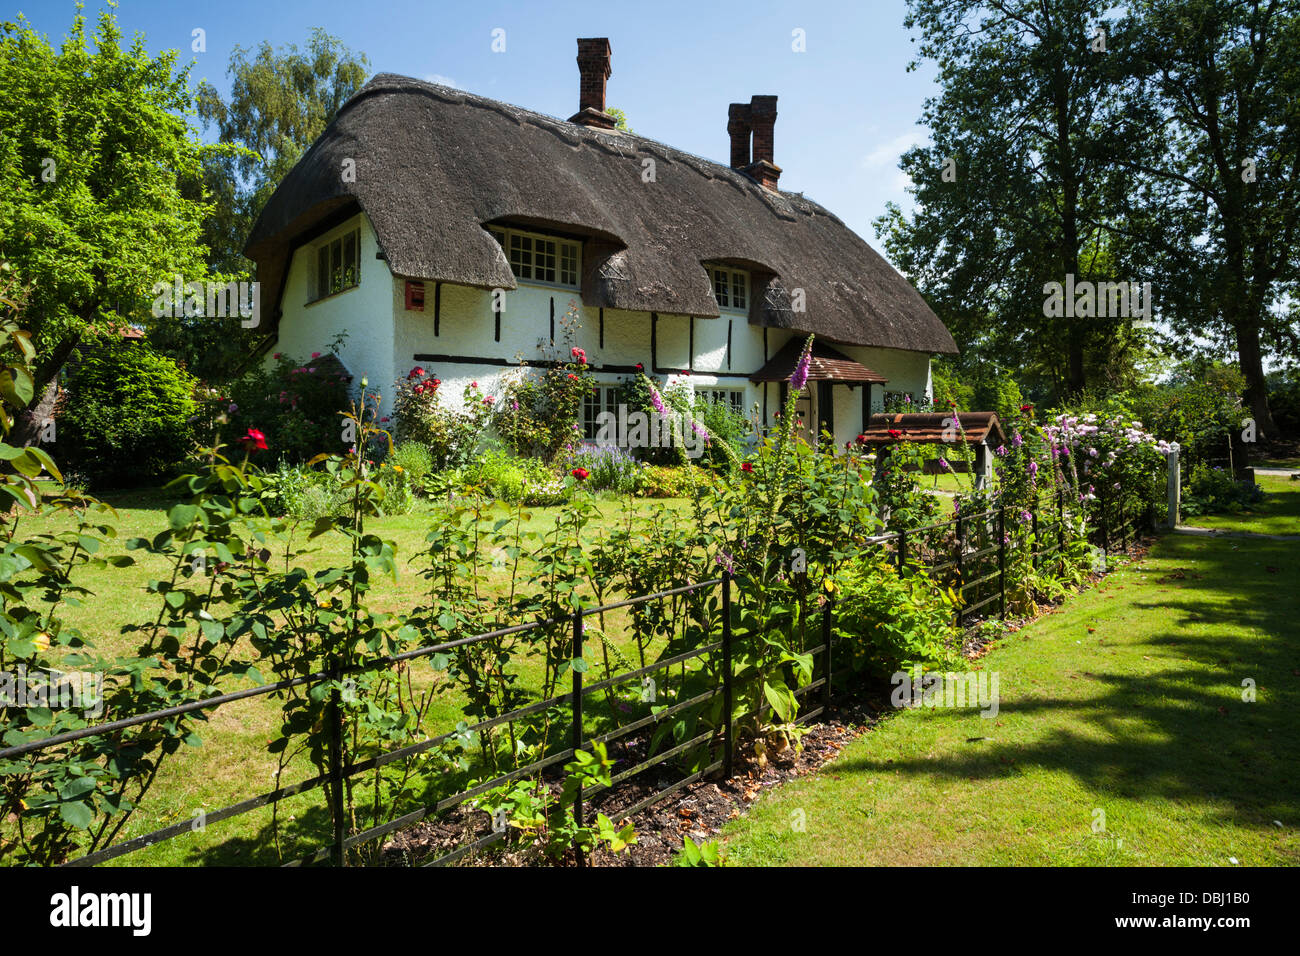 A picturesque thatched cottage in the tiny chilterns village of Horsenden near Princes Risborough, Buckinghamshire, Stock Photo